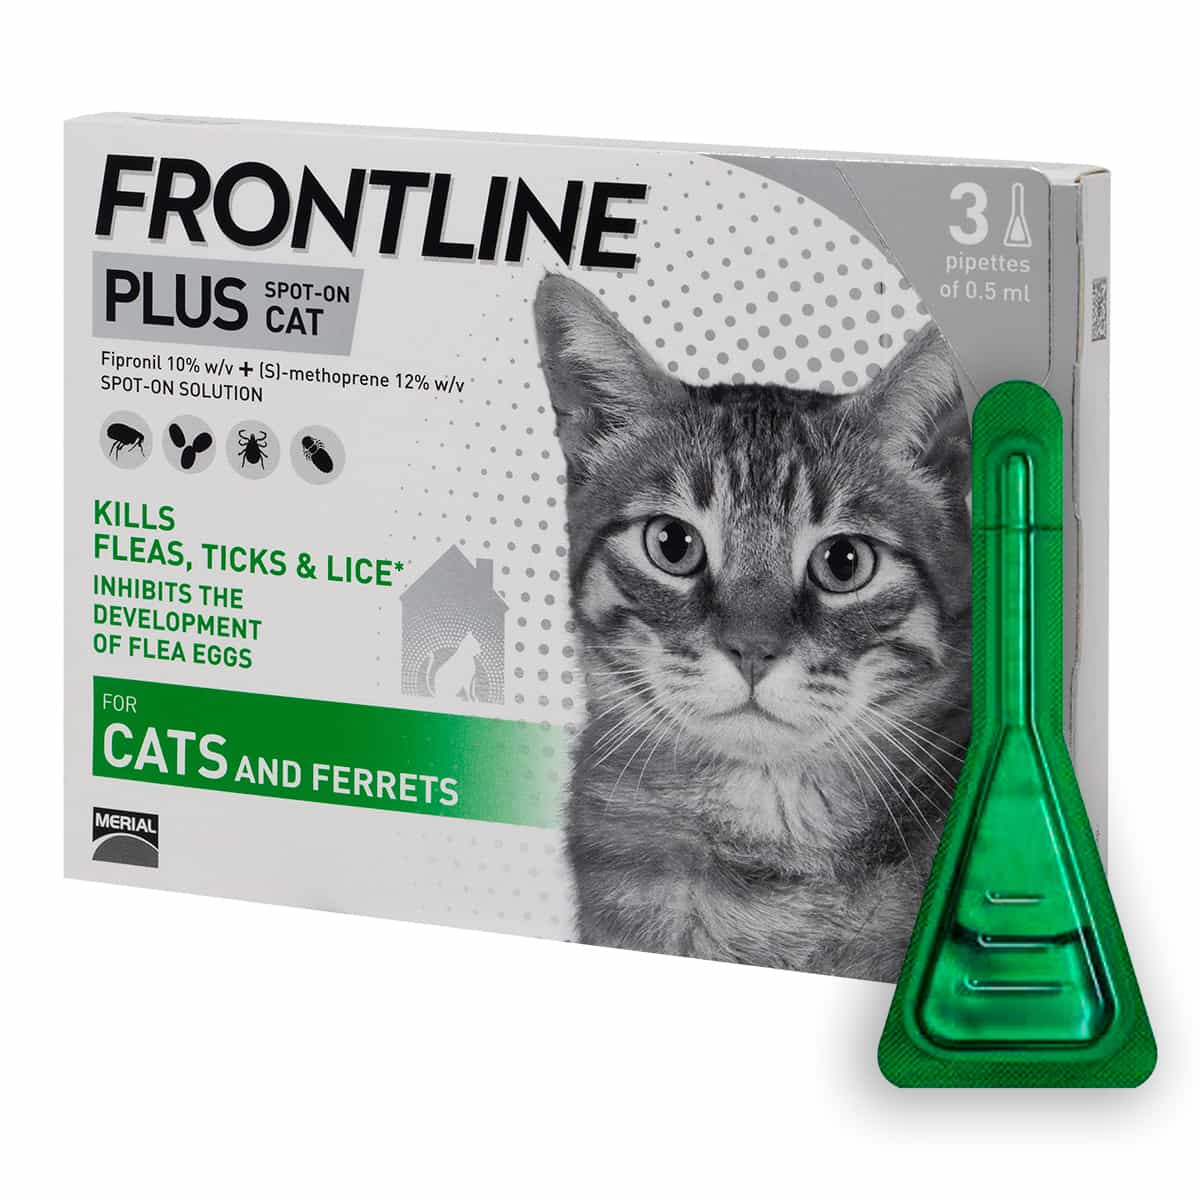 Frontline Plus 3 pipettes